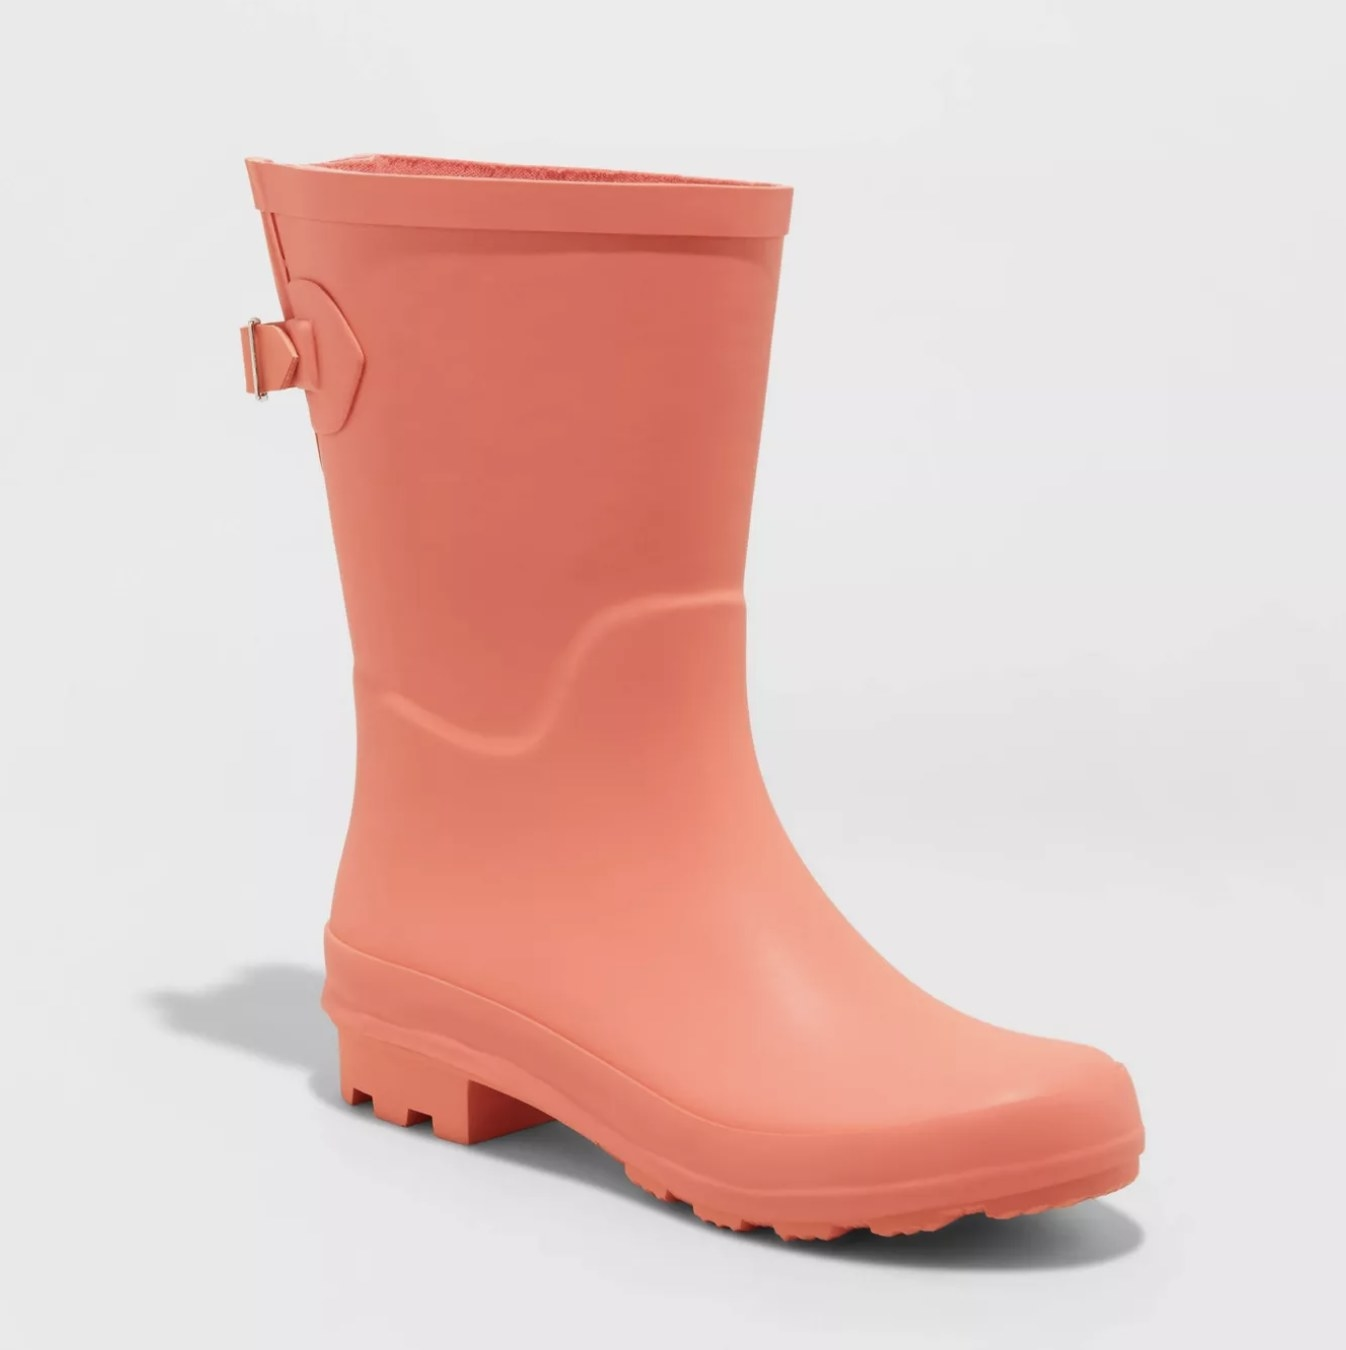 The coral rainboot